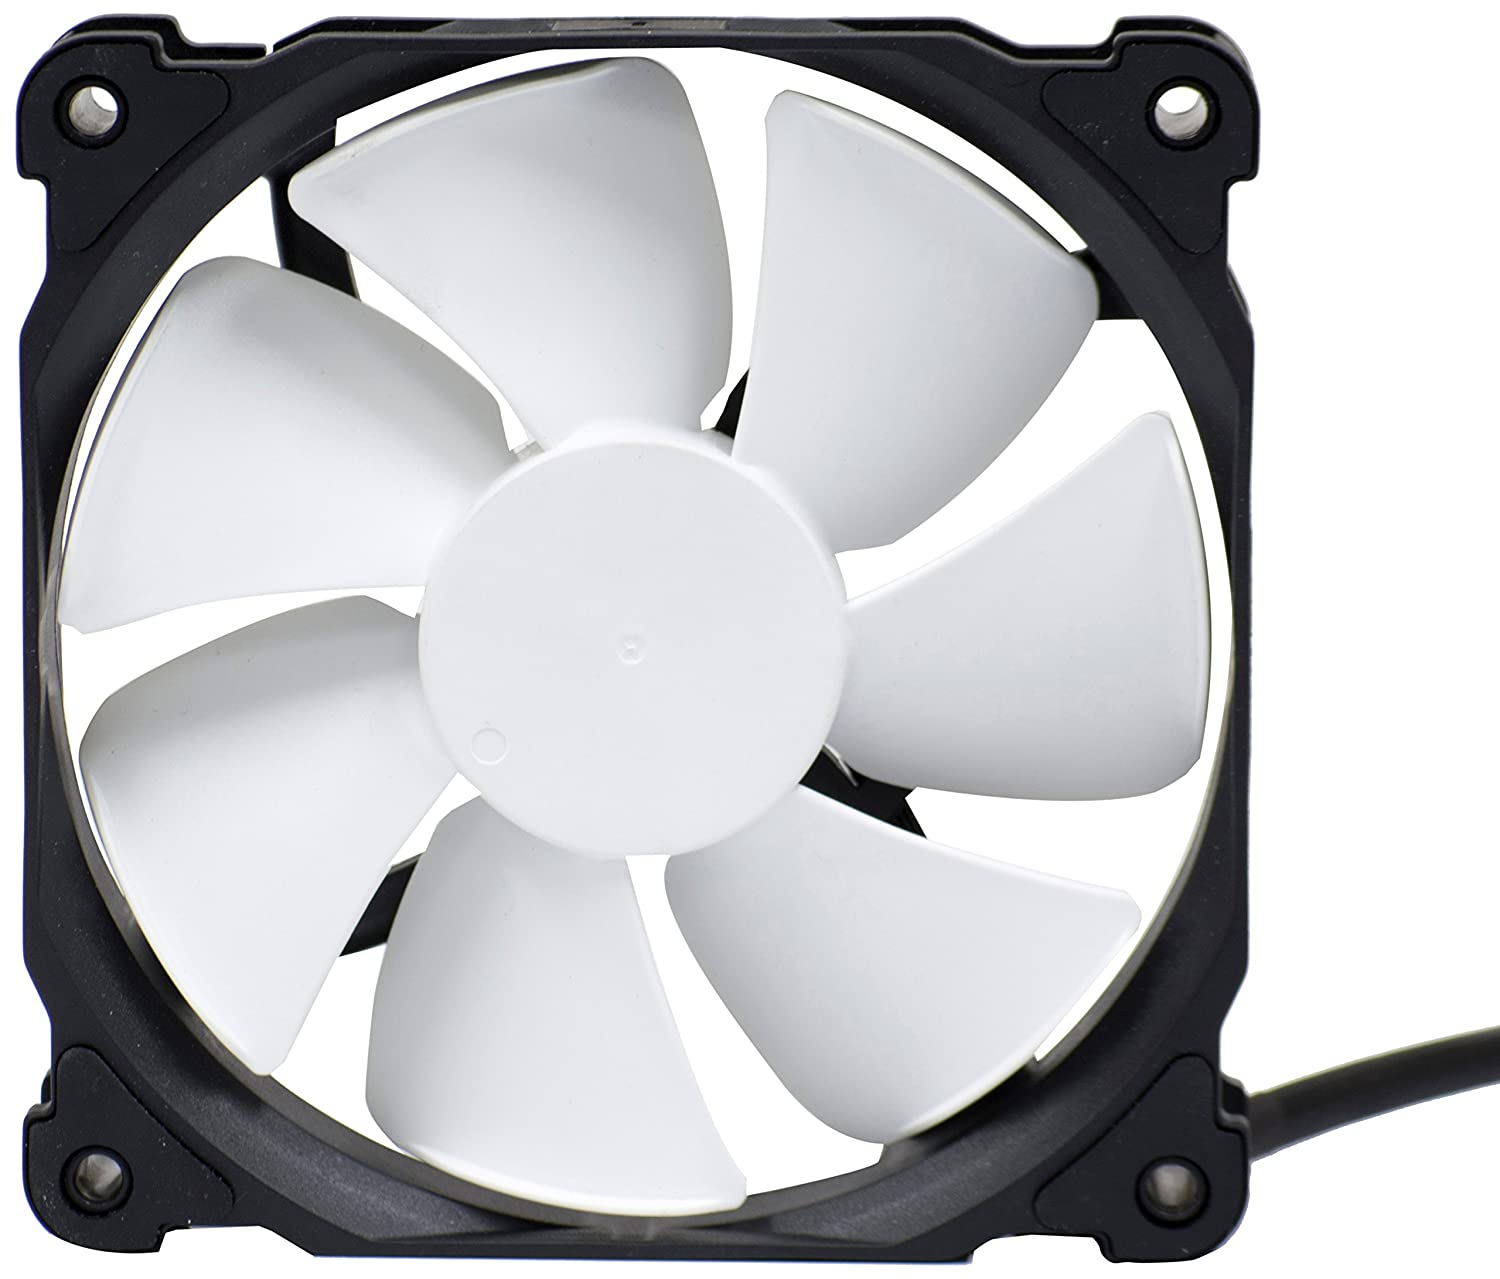 Phanteks 120mm, PWM, High Static Pressure Radiator Retail Cooling Fan PH-F120MP_BK_PWM